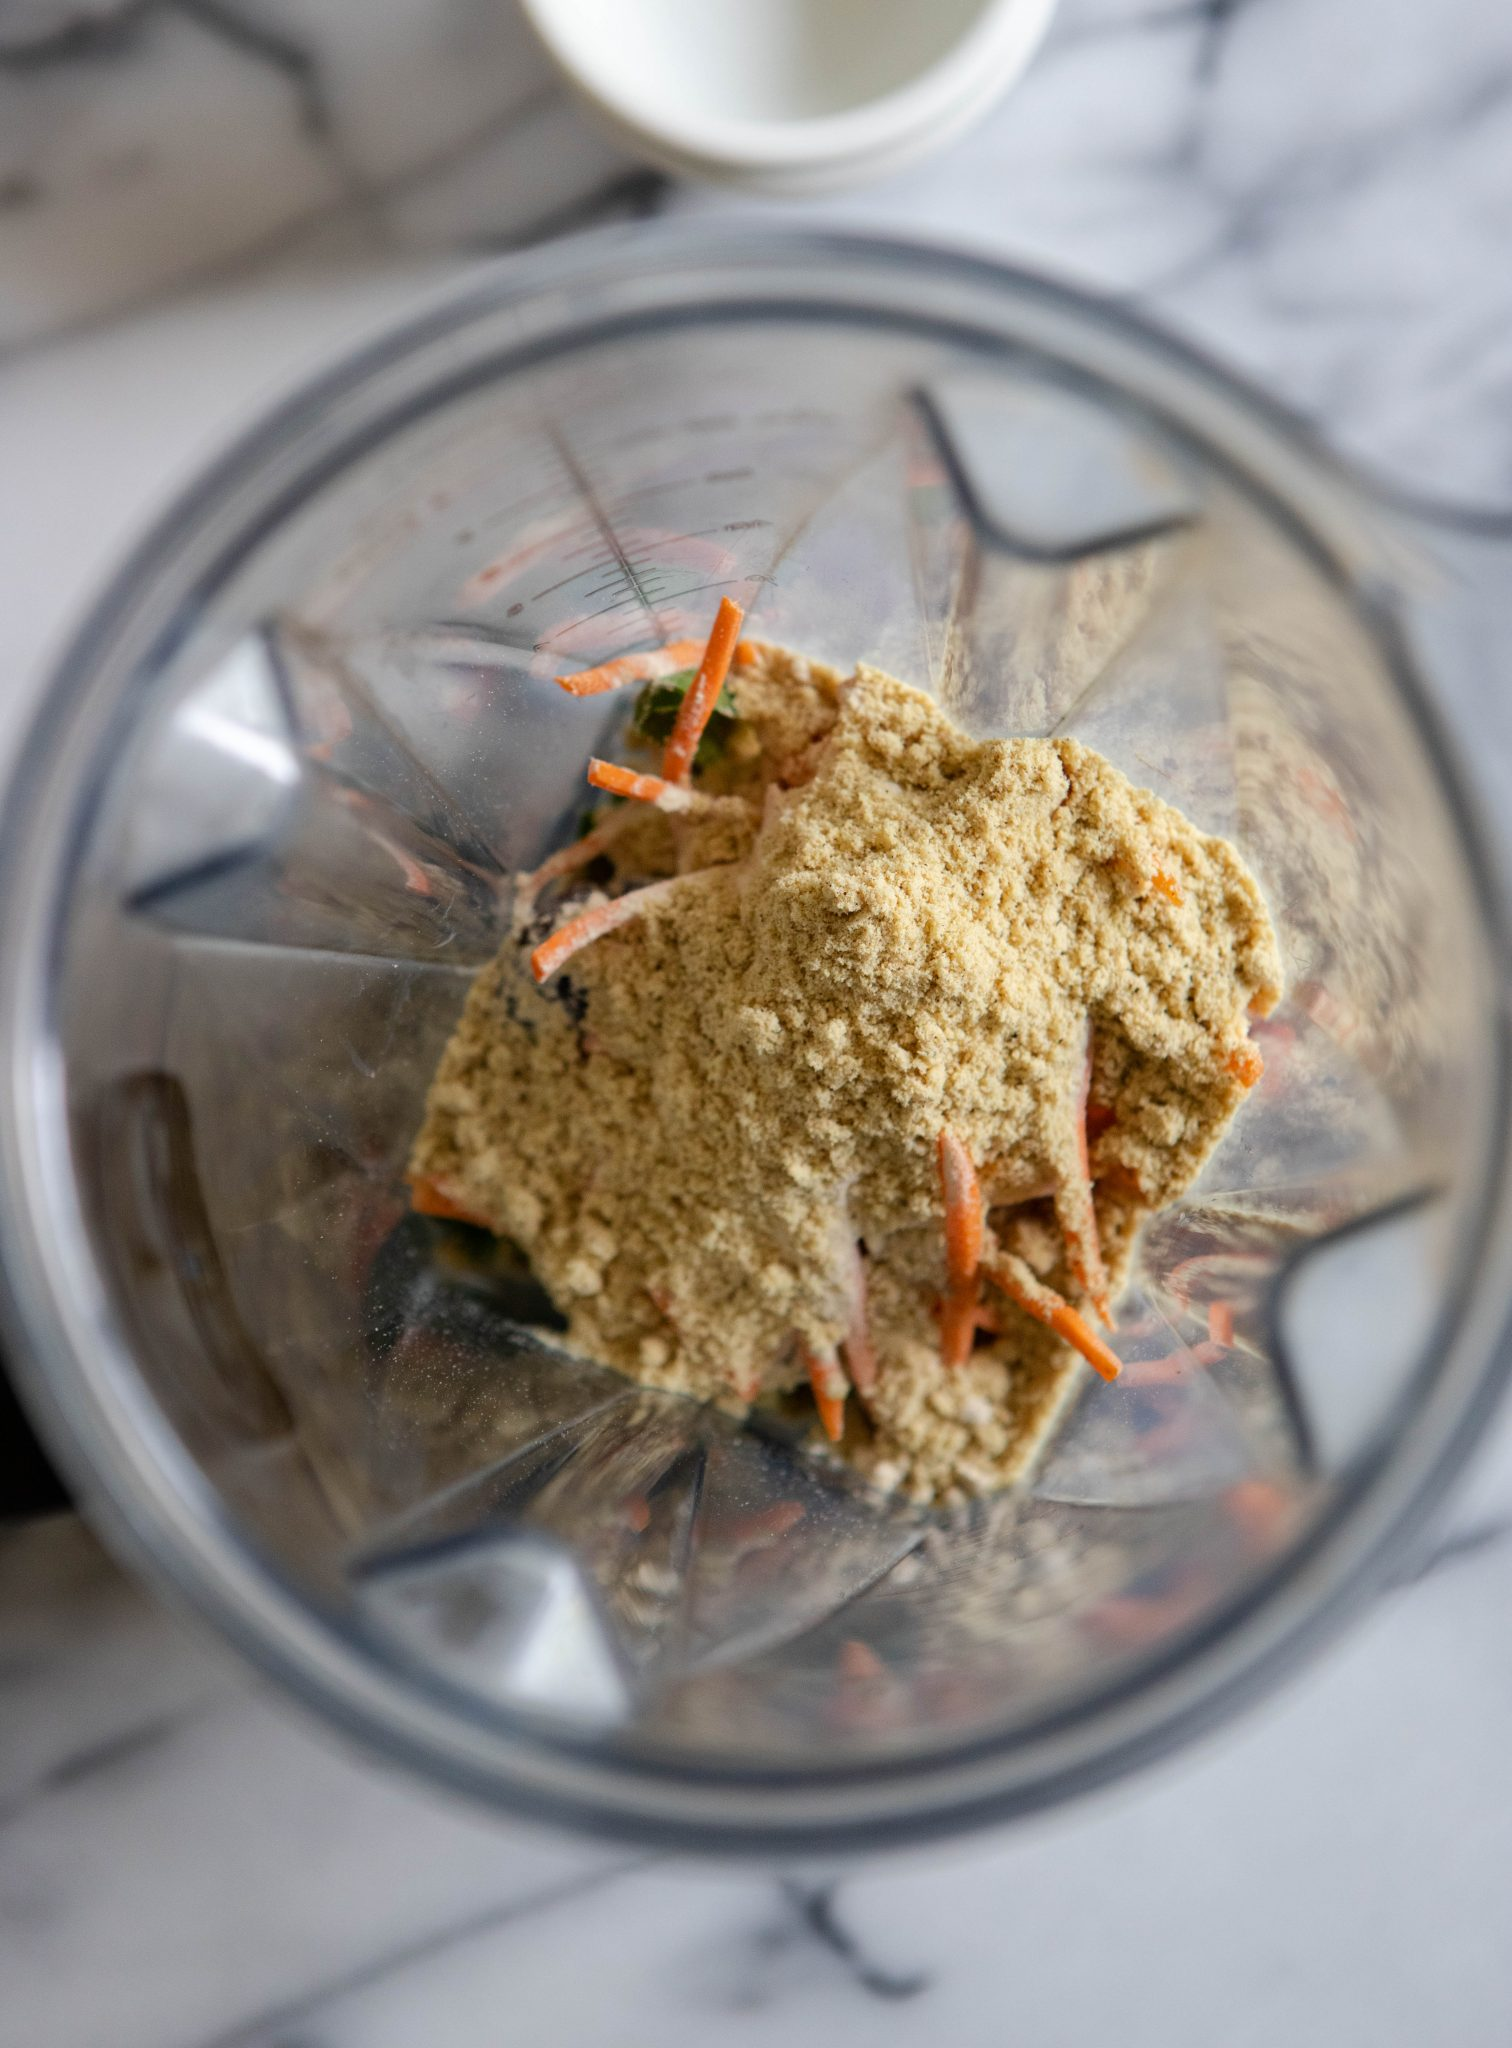 Protein powder and veggies in a blender